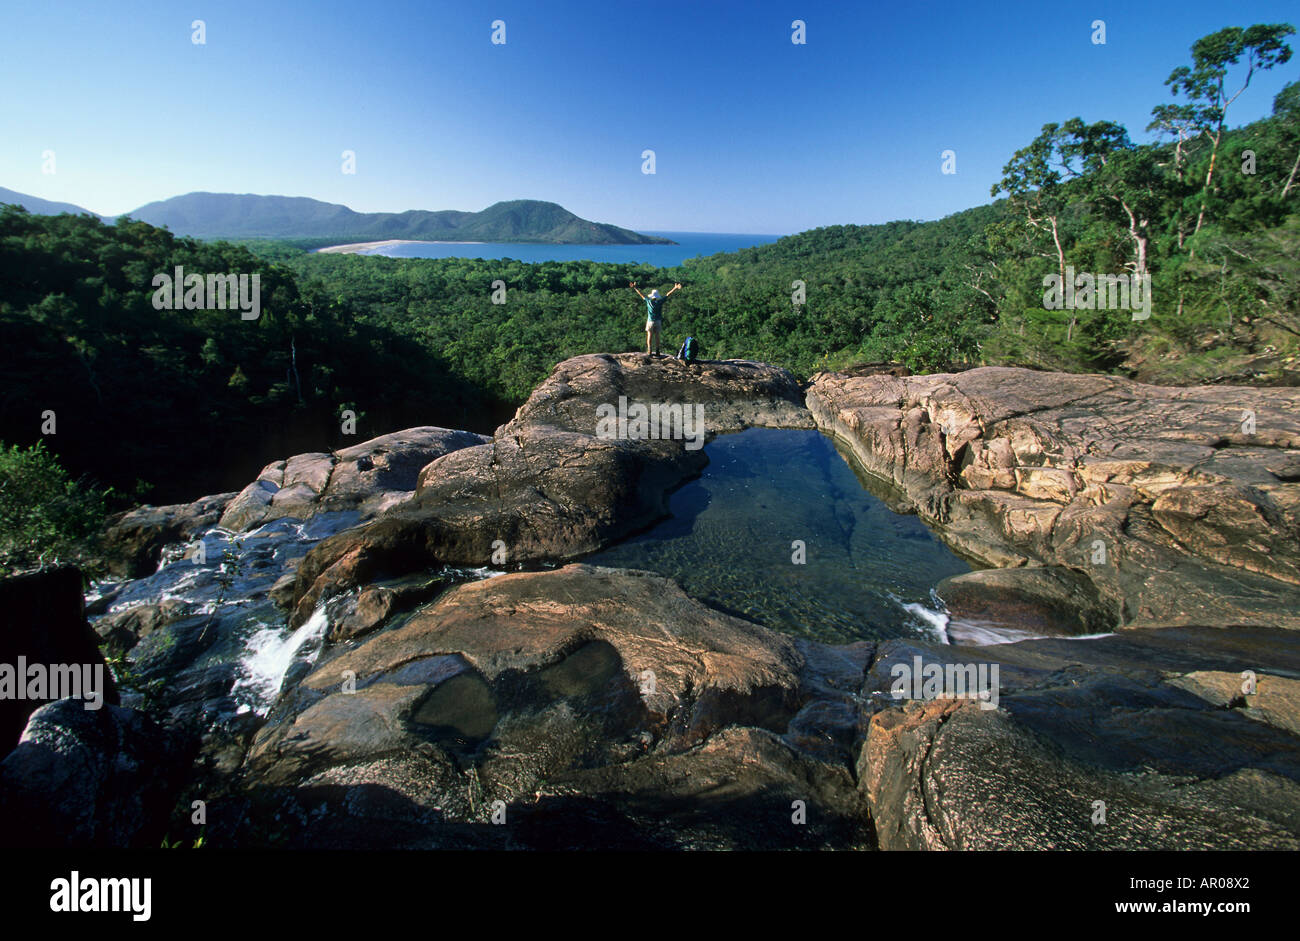 Hinchinbrook Island, bush walk, Australien, Queensland, Hinchinbrook tropical Island, Thorsborne bushwalking trail - Stock Image